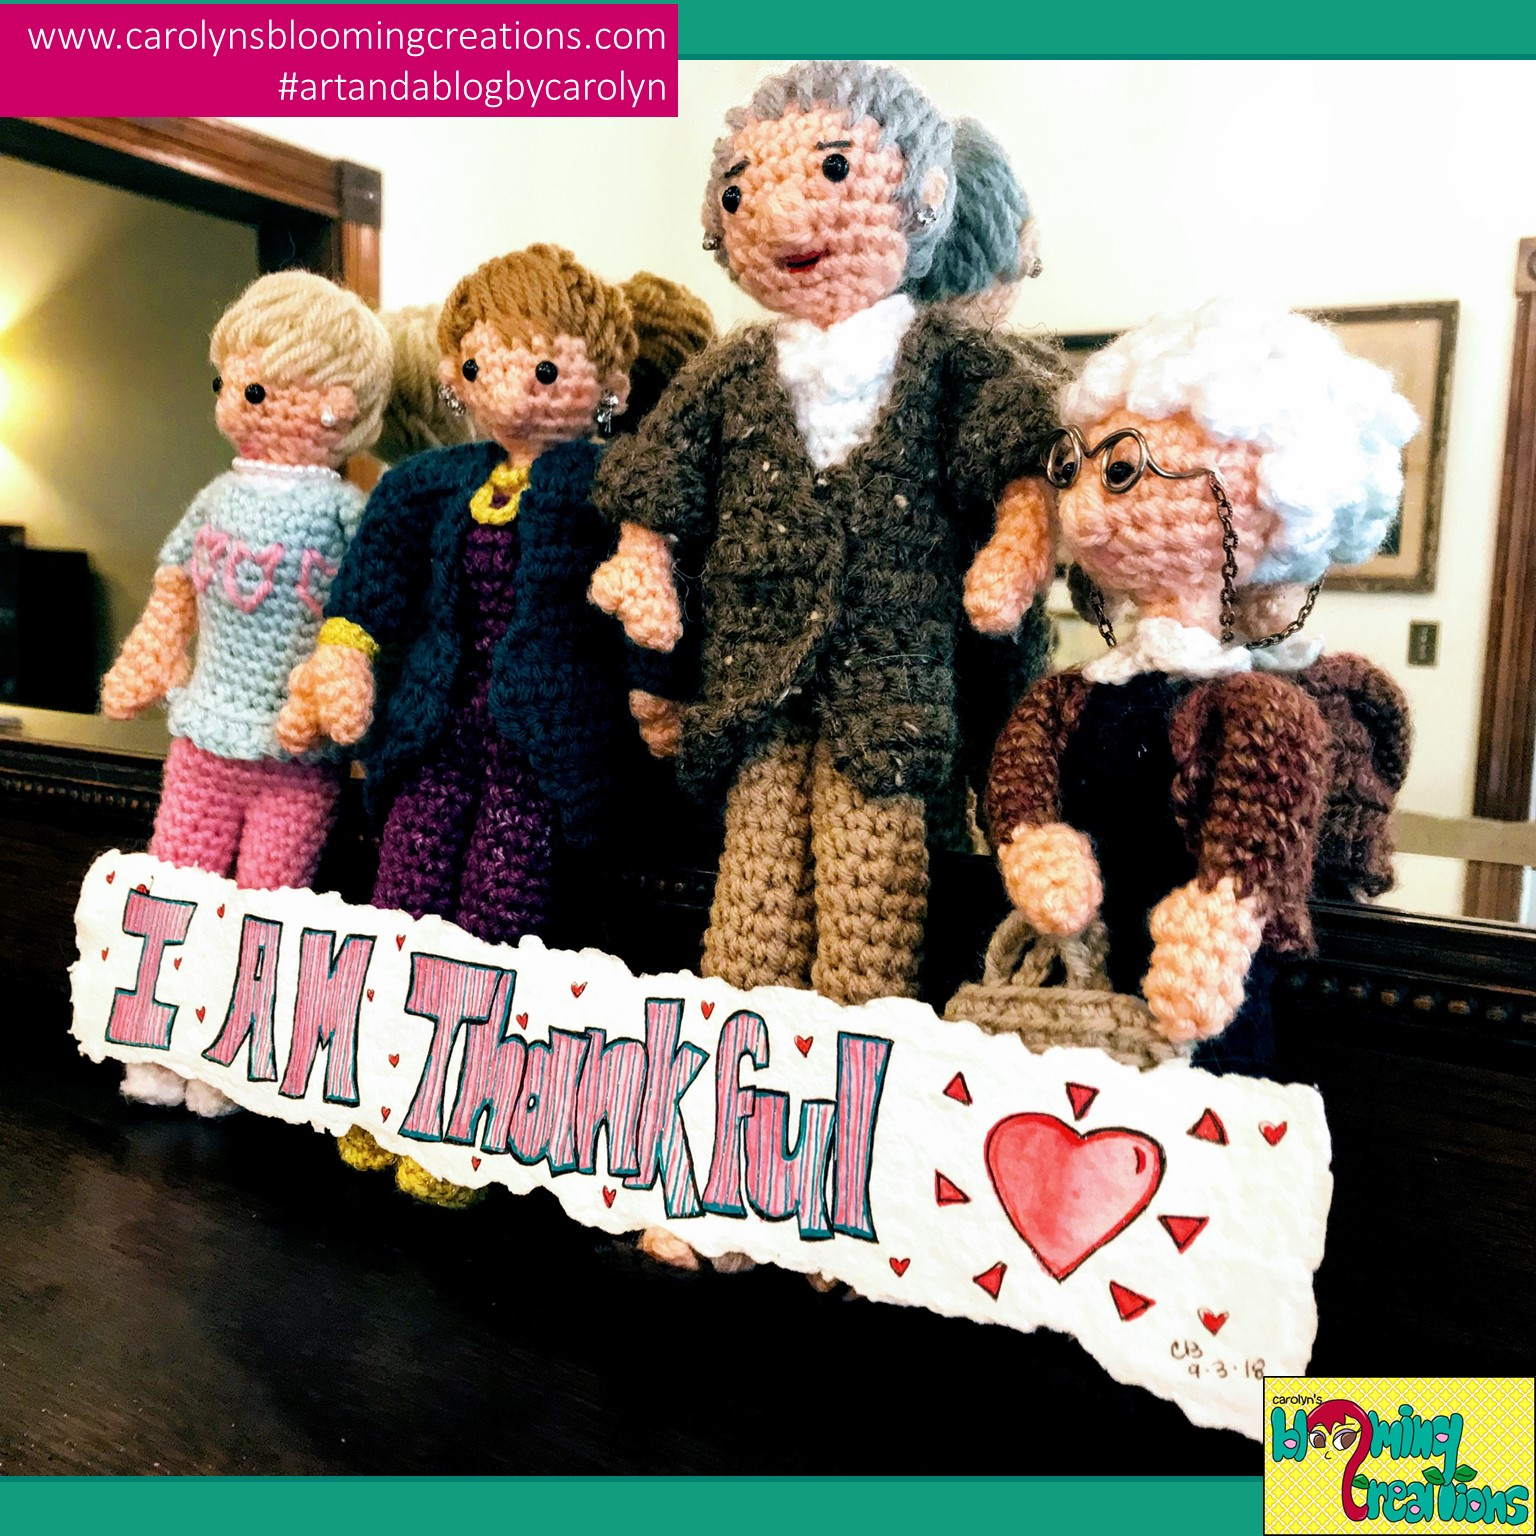 Art by Carolyn J. Braden, Crocheted Golden Girls dolls by Carolyn's friend, Susan Ehringer. Media for Carolyn's art: Gelly Roll pens on hand crafted cotton paper (made by Carolyn).